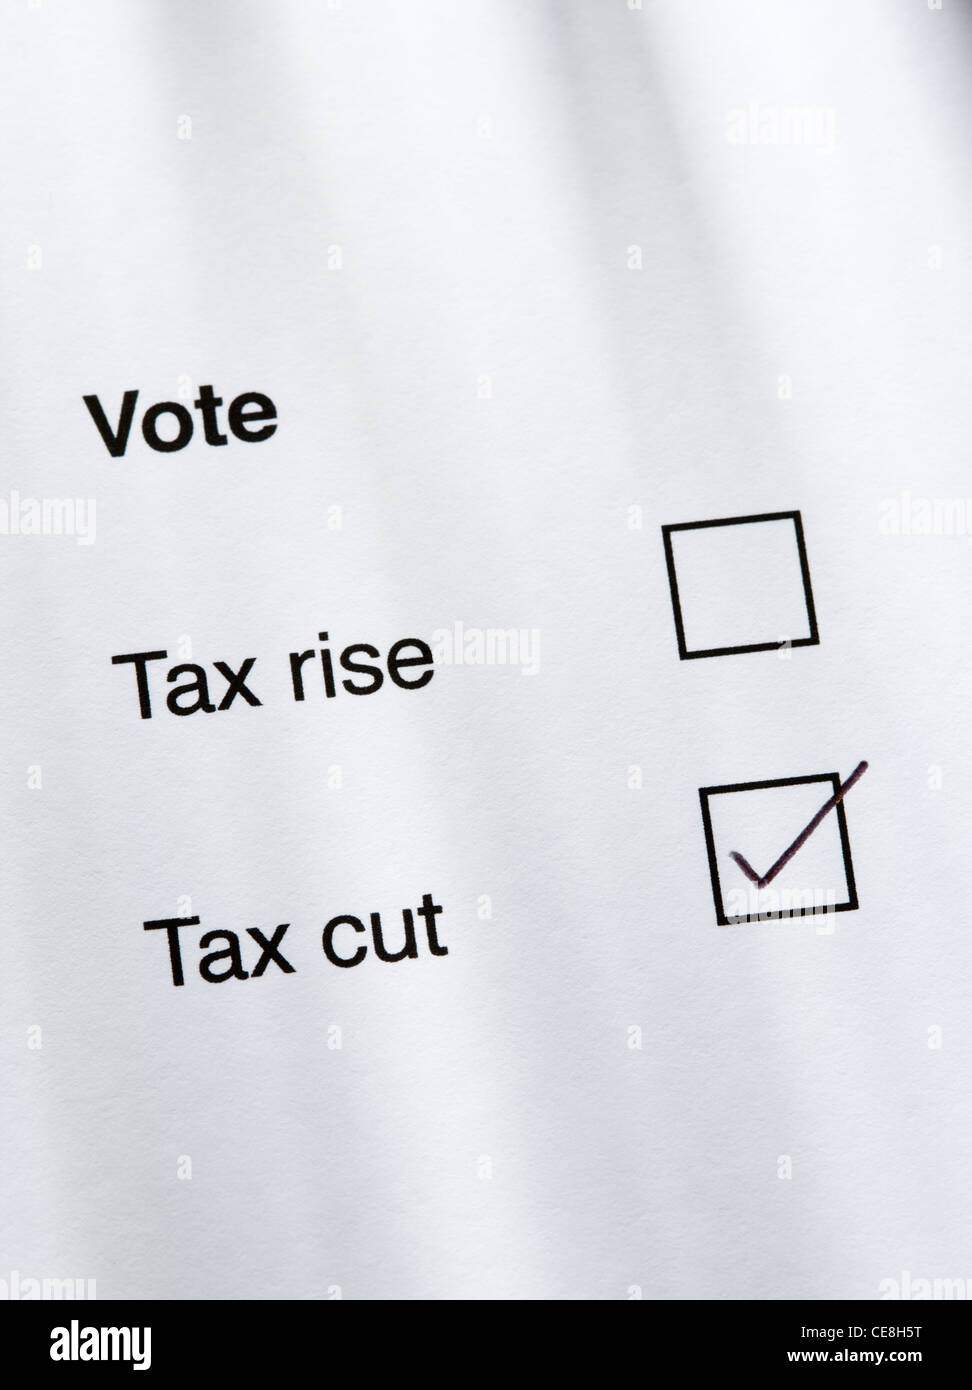 Vote for tax cut. - Stock Image